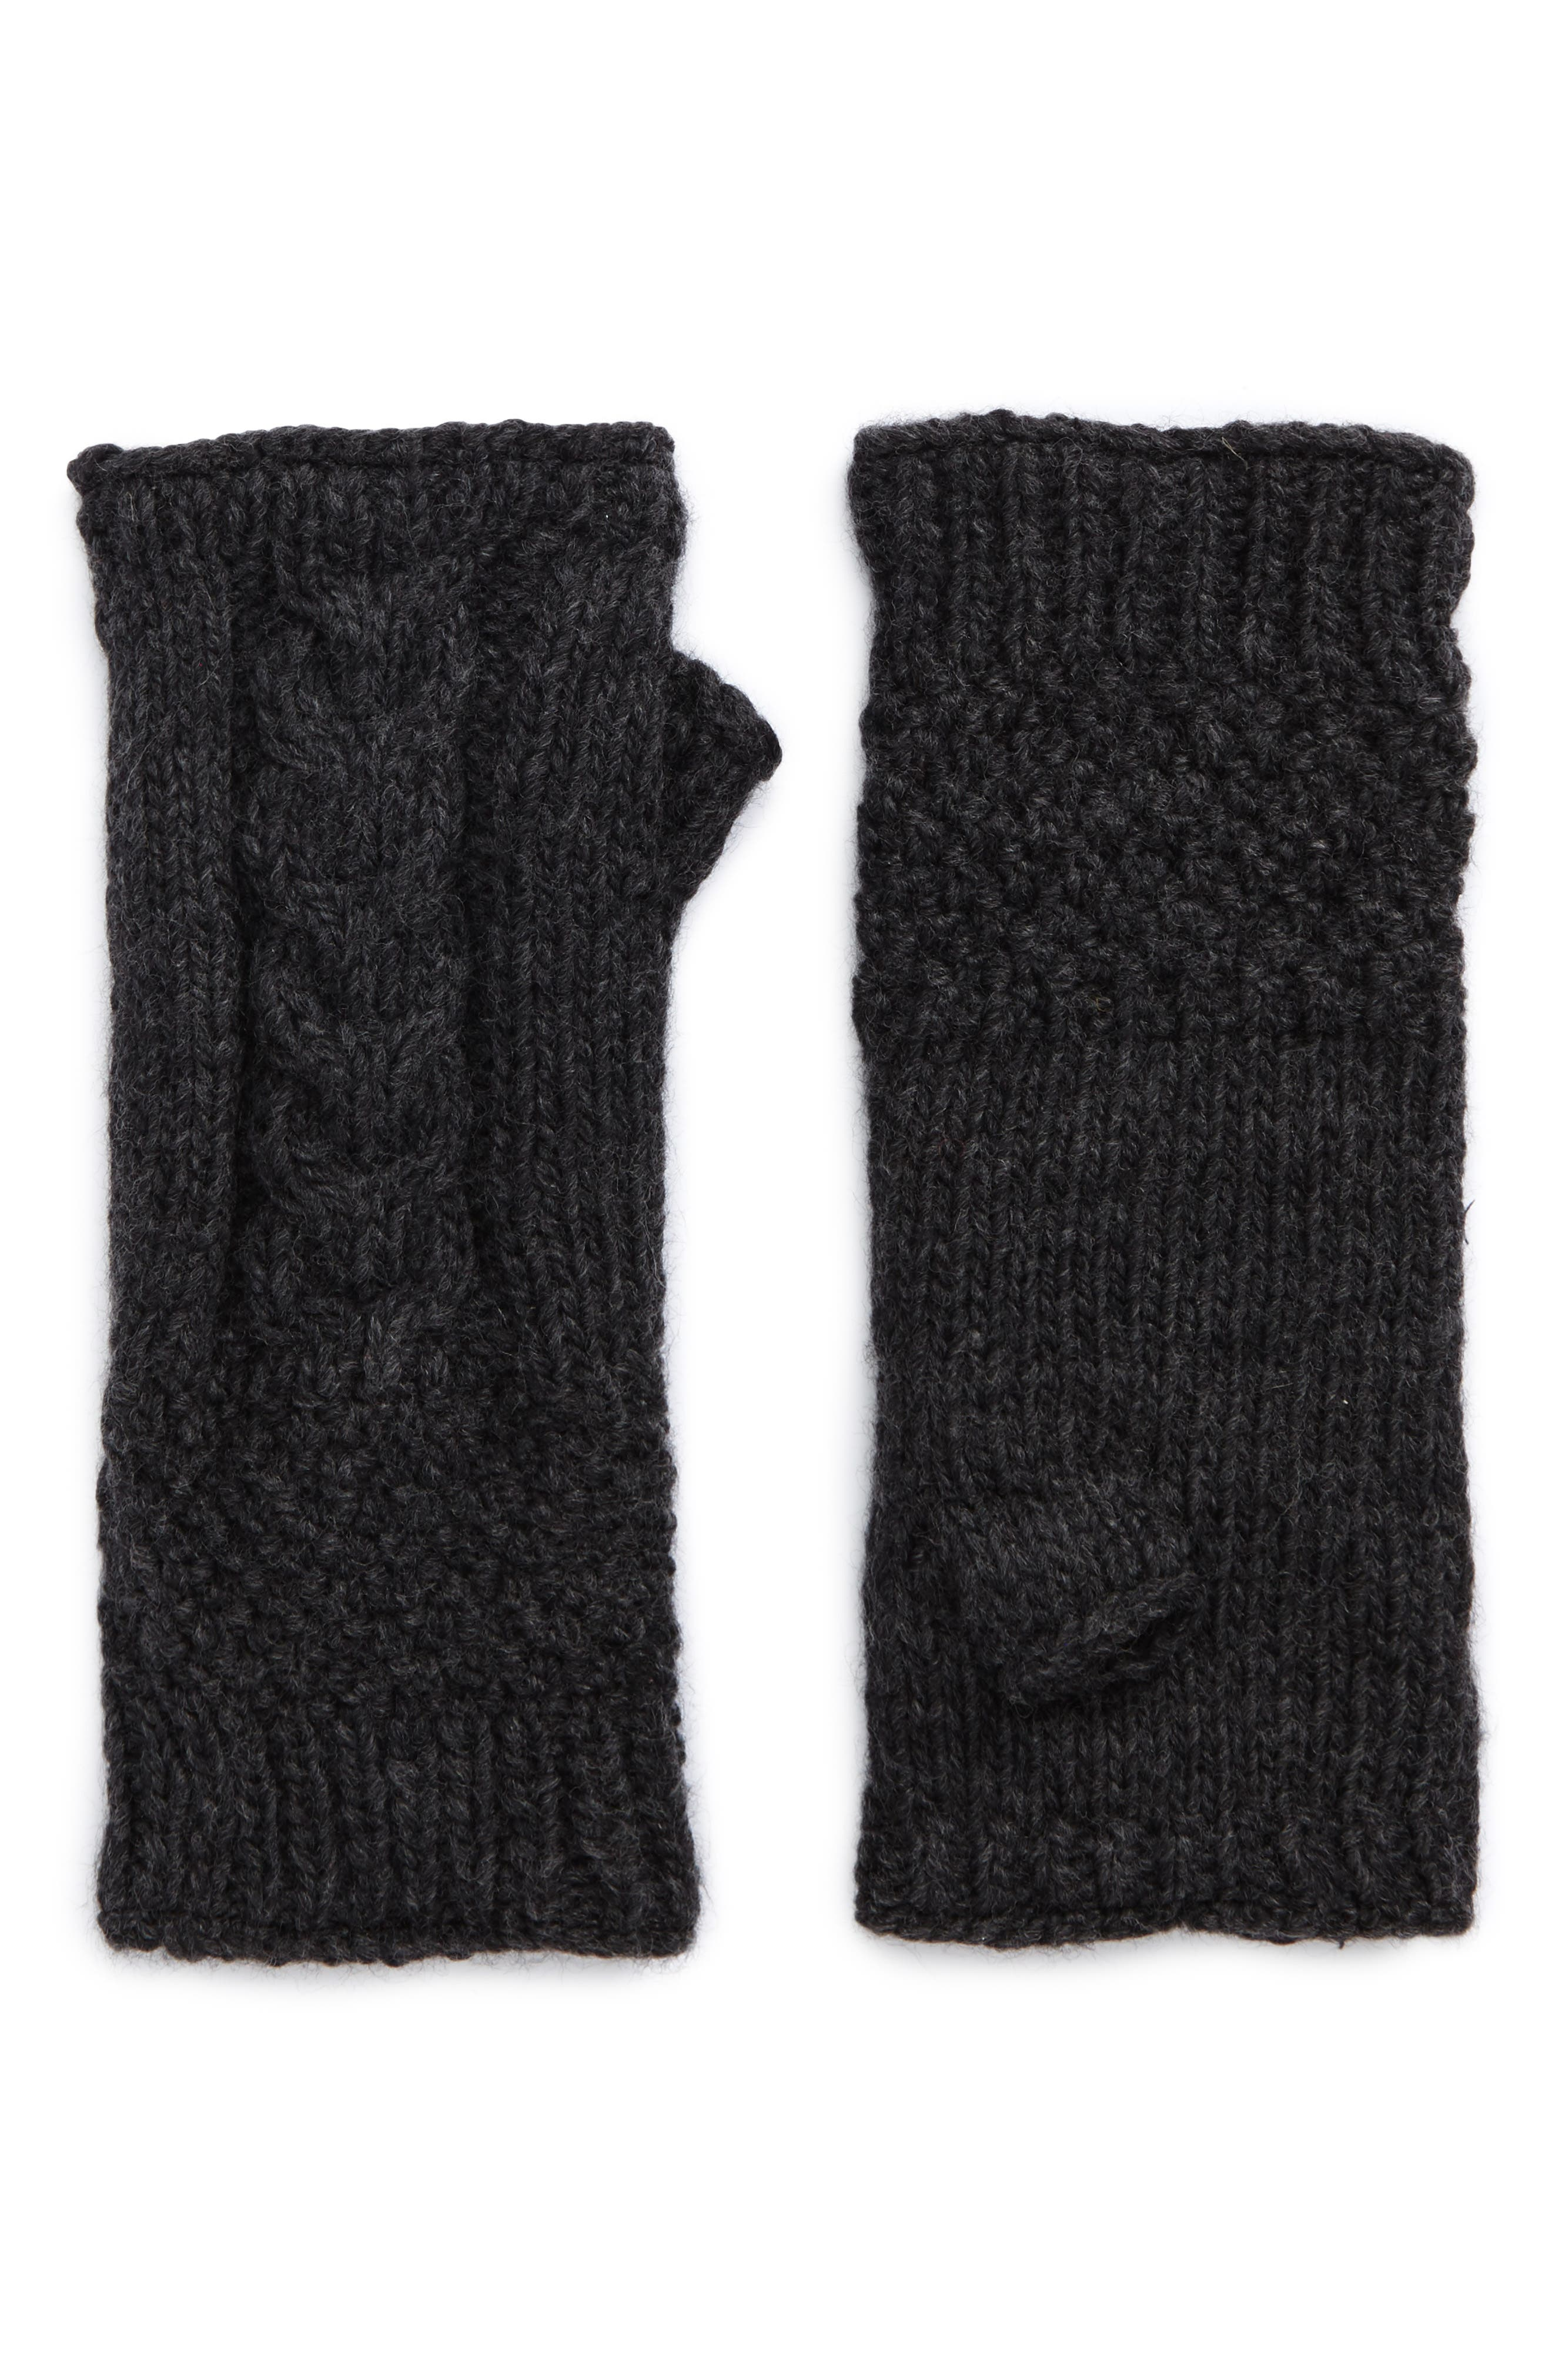 Nirvanna Designs Cable Knit Hand Warmers